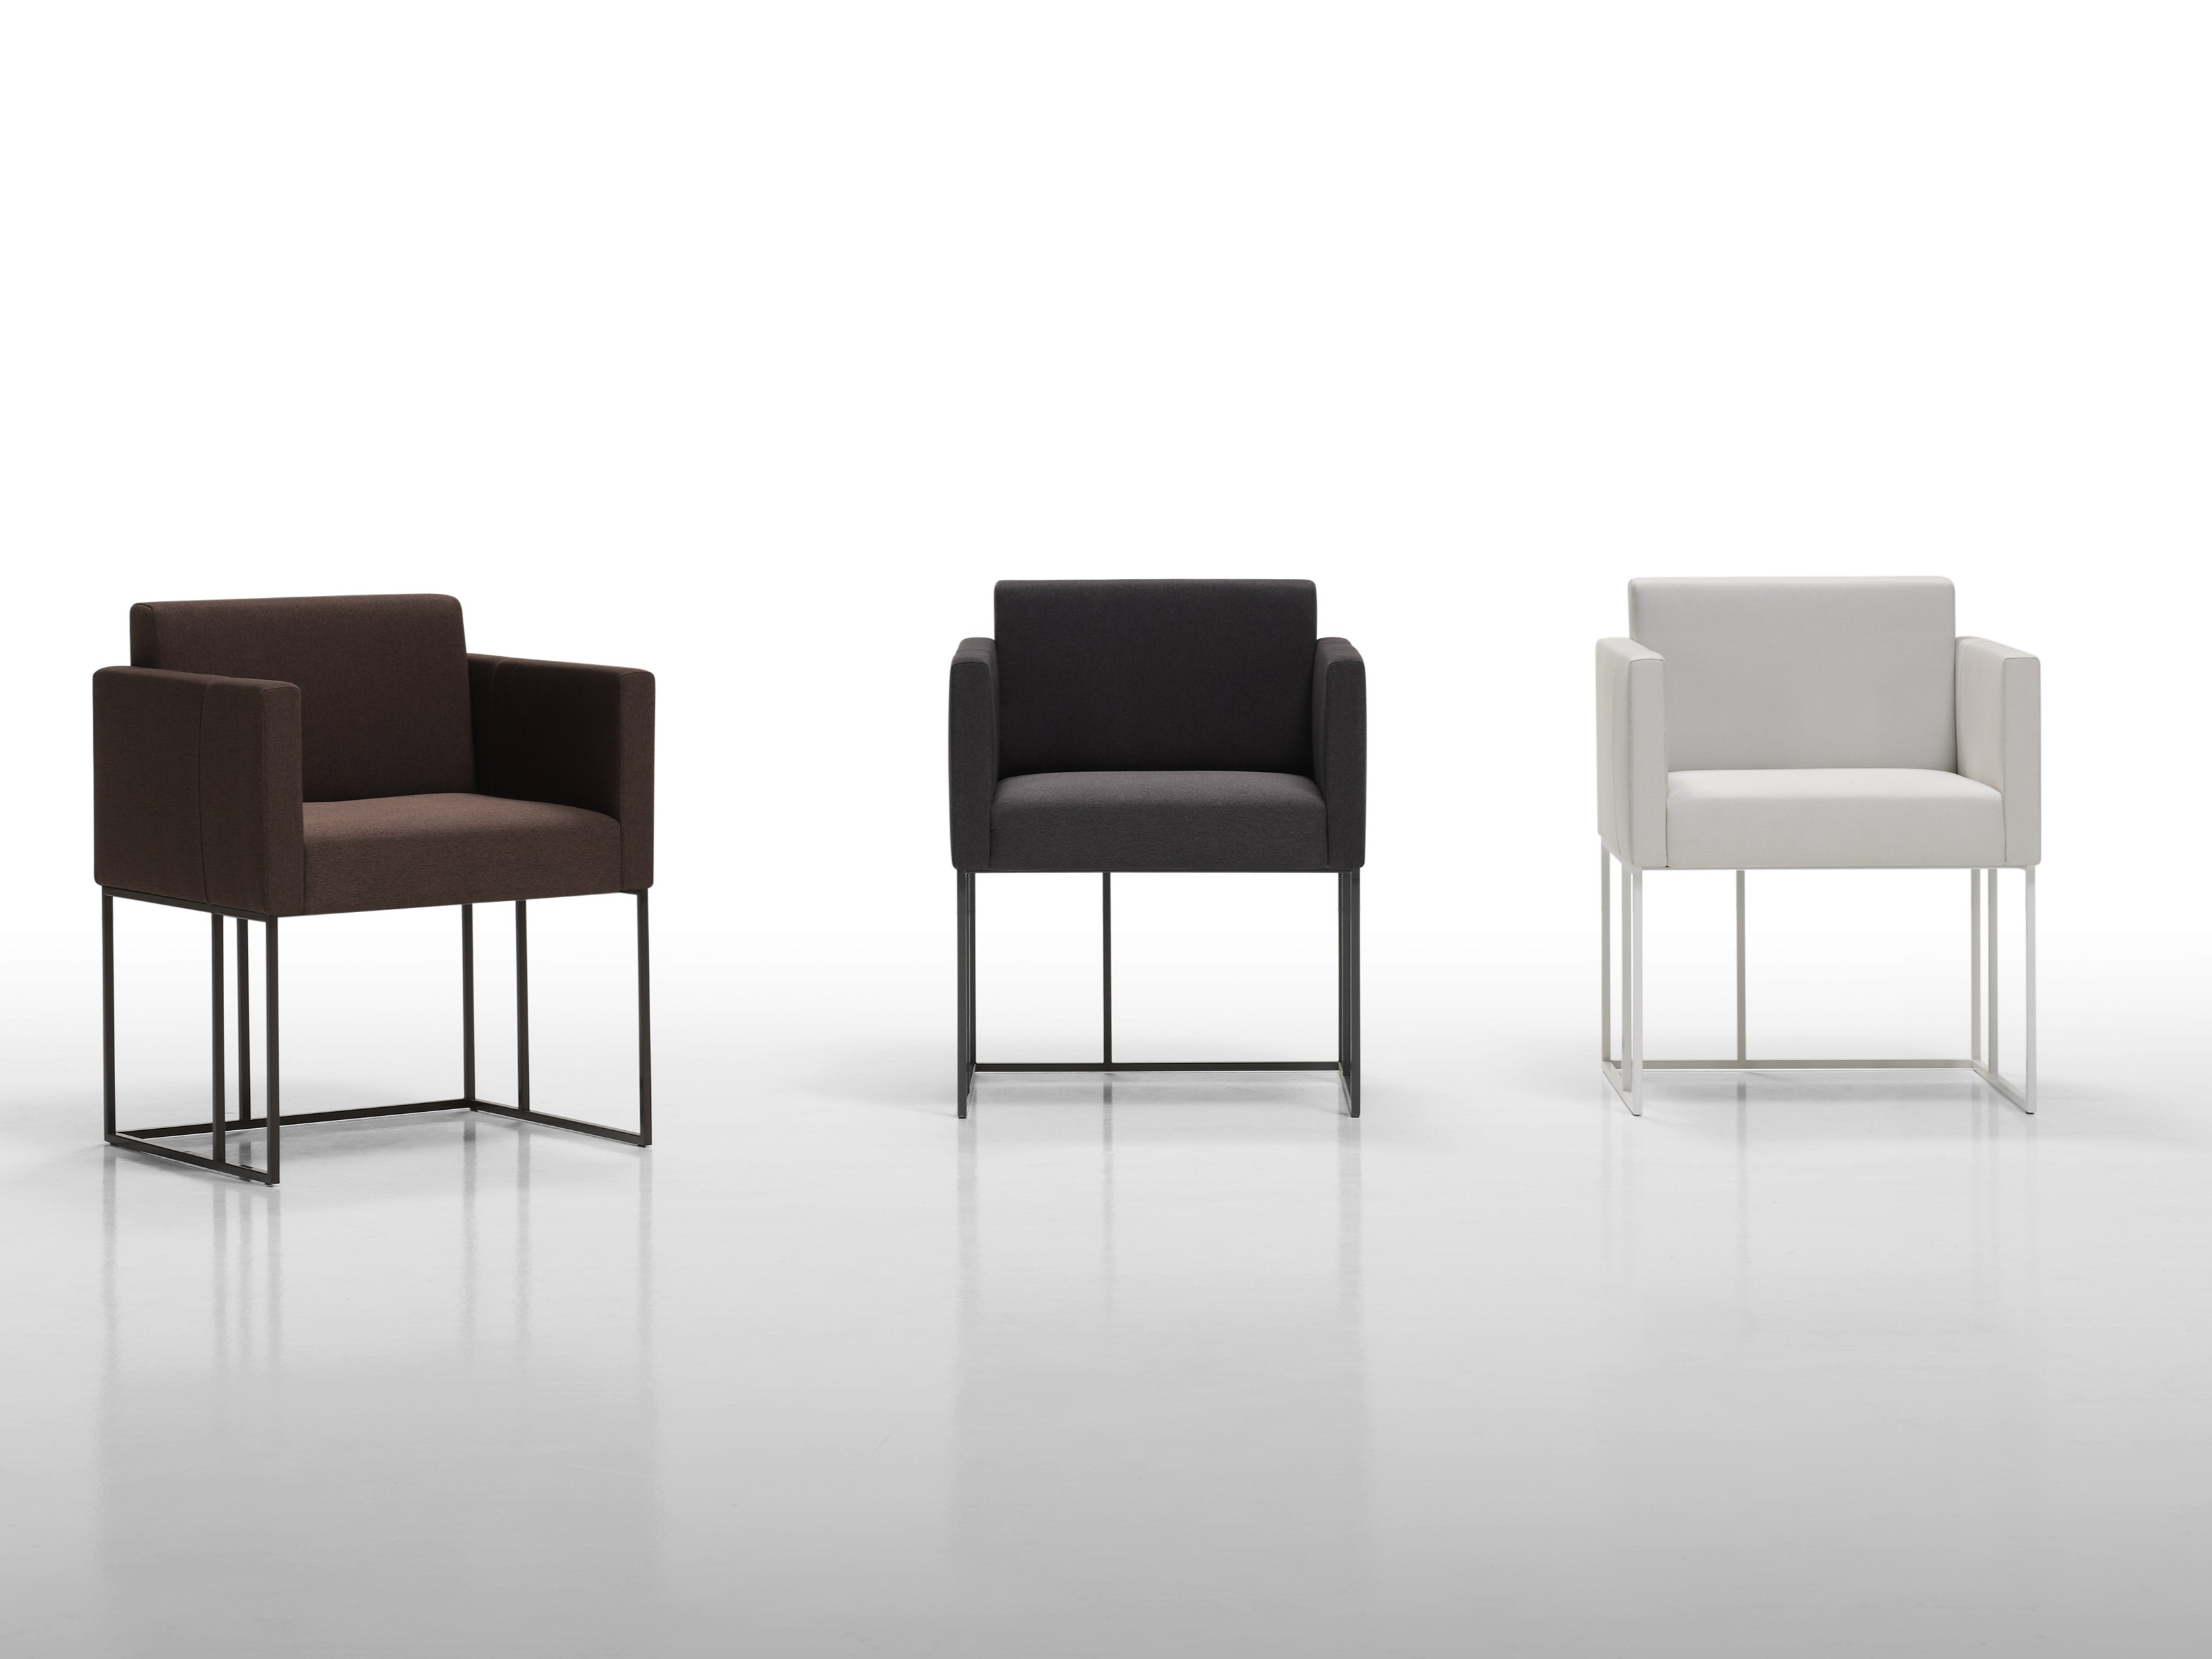 Elements xs petit fauteuil by inclass mobles design ram n for Sillones para oficina modernos